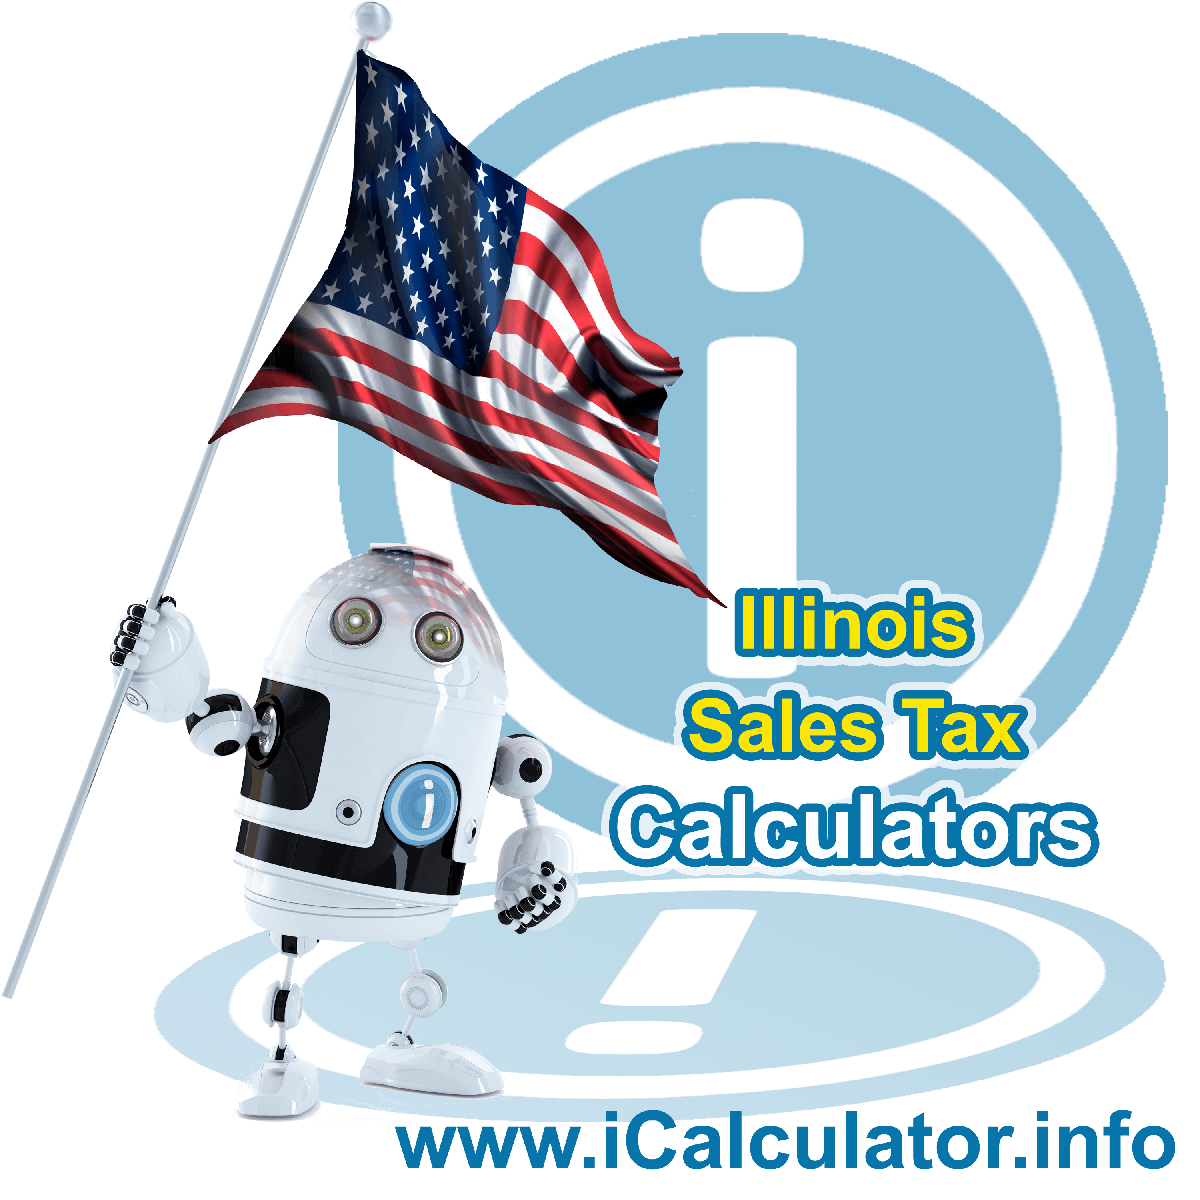 Steger Sales Rates: This image illustrates a calculator robot calculating Steger sales tax manually using the Steger Sales Tax Formula. You can use this information to calculate Steger Sales Tax manually or use the Steger Sales Tax Calculator to calculate sales tax online.